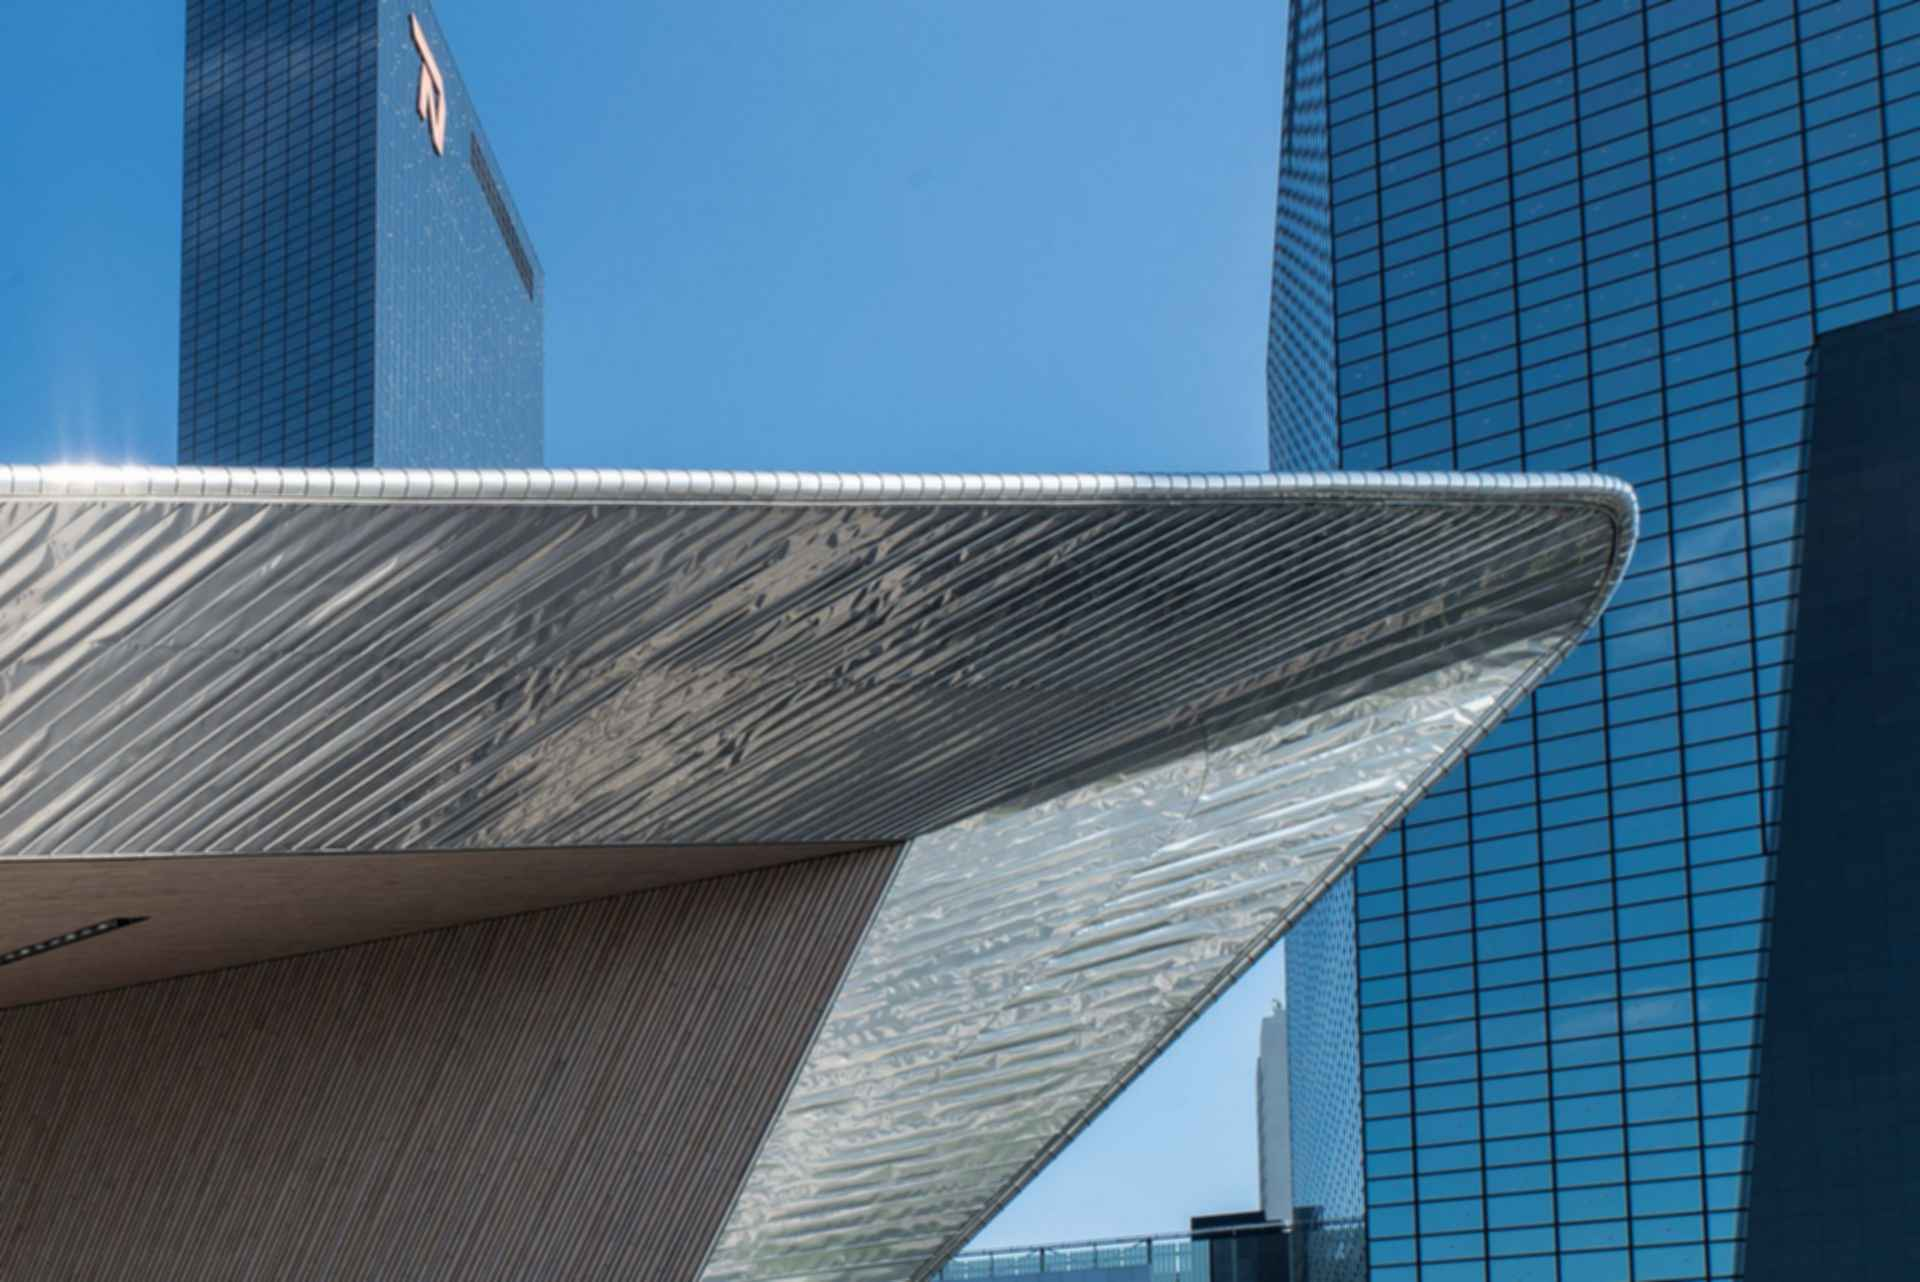 Rotterdam Central Station - Roof Detail